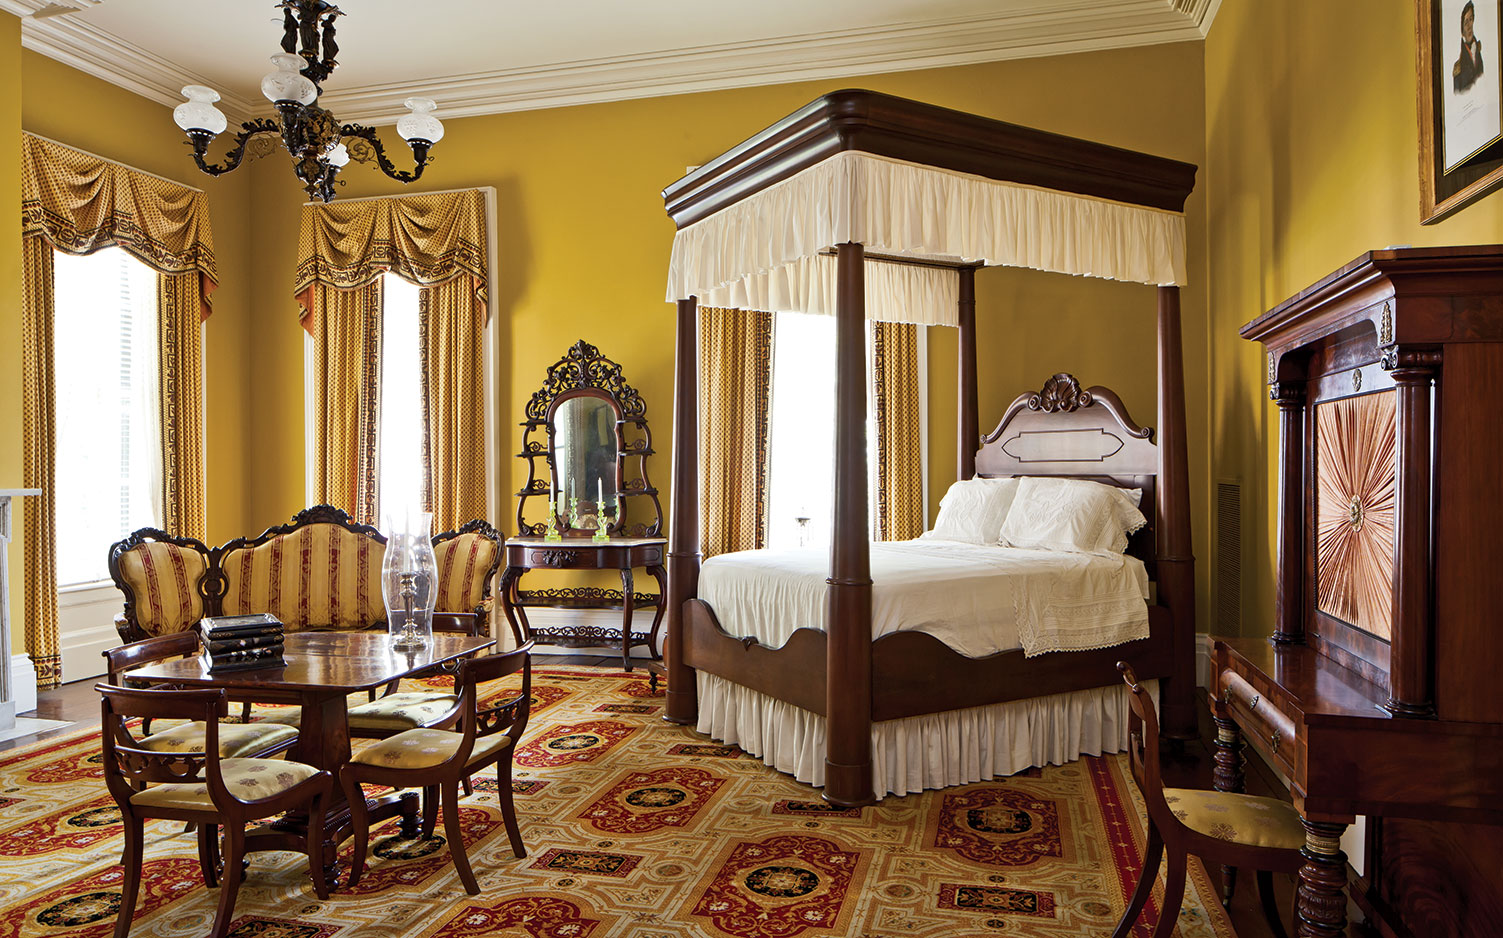 Bedroom Furniture Jackson Ms meet mississippi first lady deborah bryant - southern lady magazine